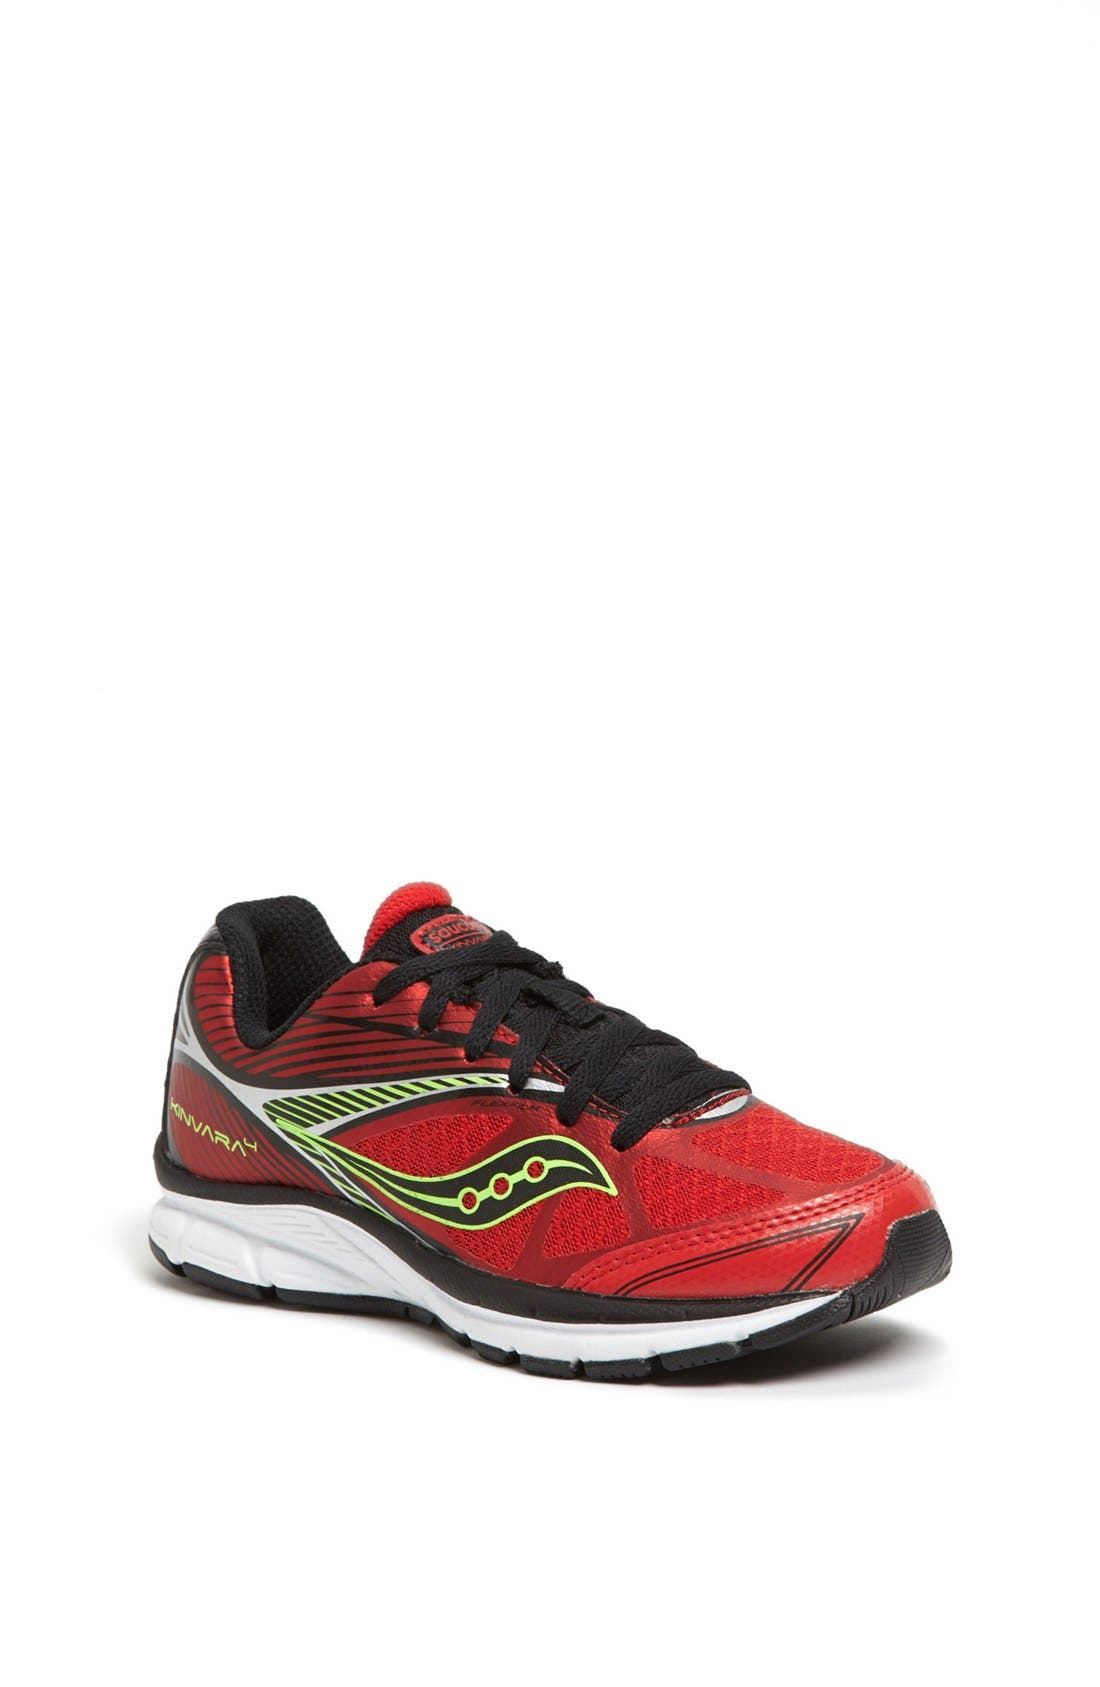 Alternate Image 1 Selected - Saucony 'Kinvara' Athletic Shoe (Toddler, Little Kid & Big Kid) (Online Only)